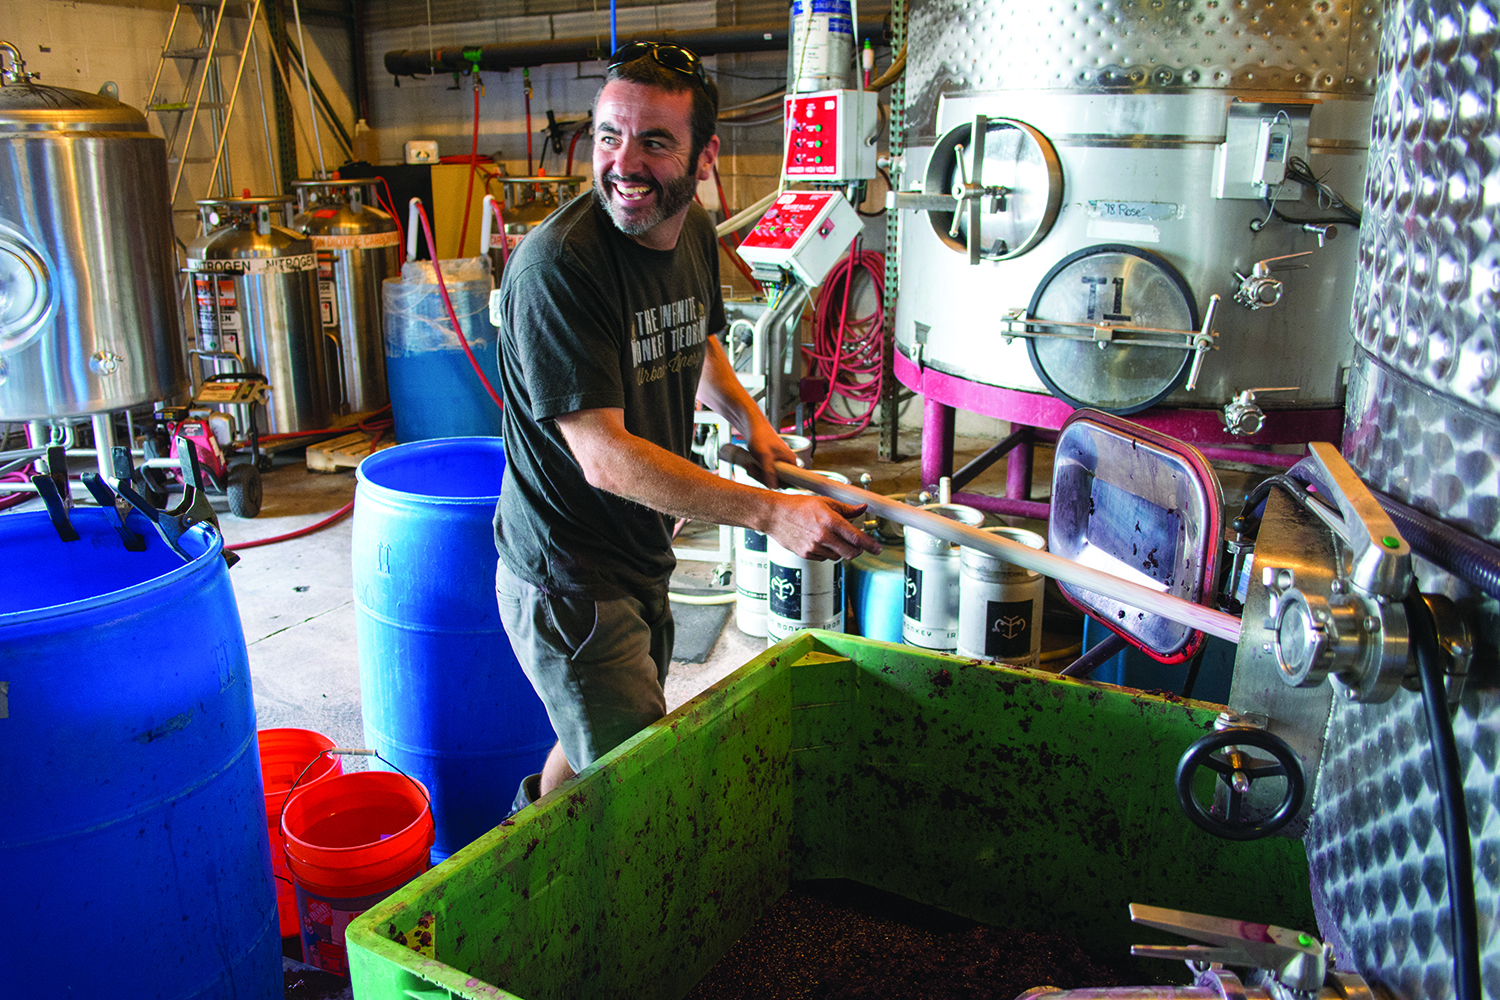 Infinite Monkey Theorem owner Ben Parsons works inside the winery.